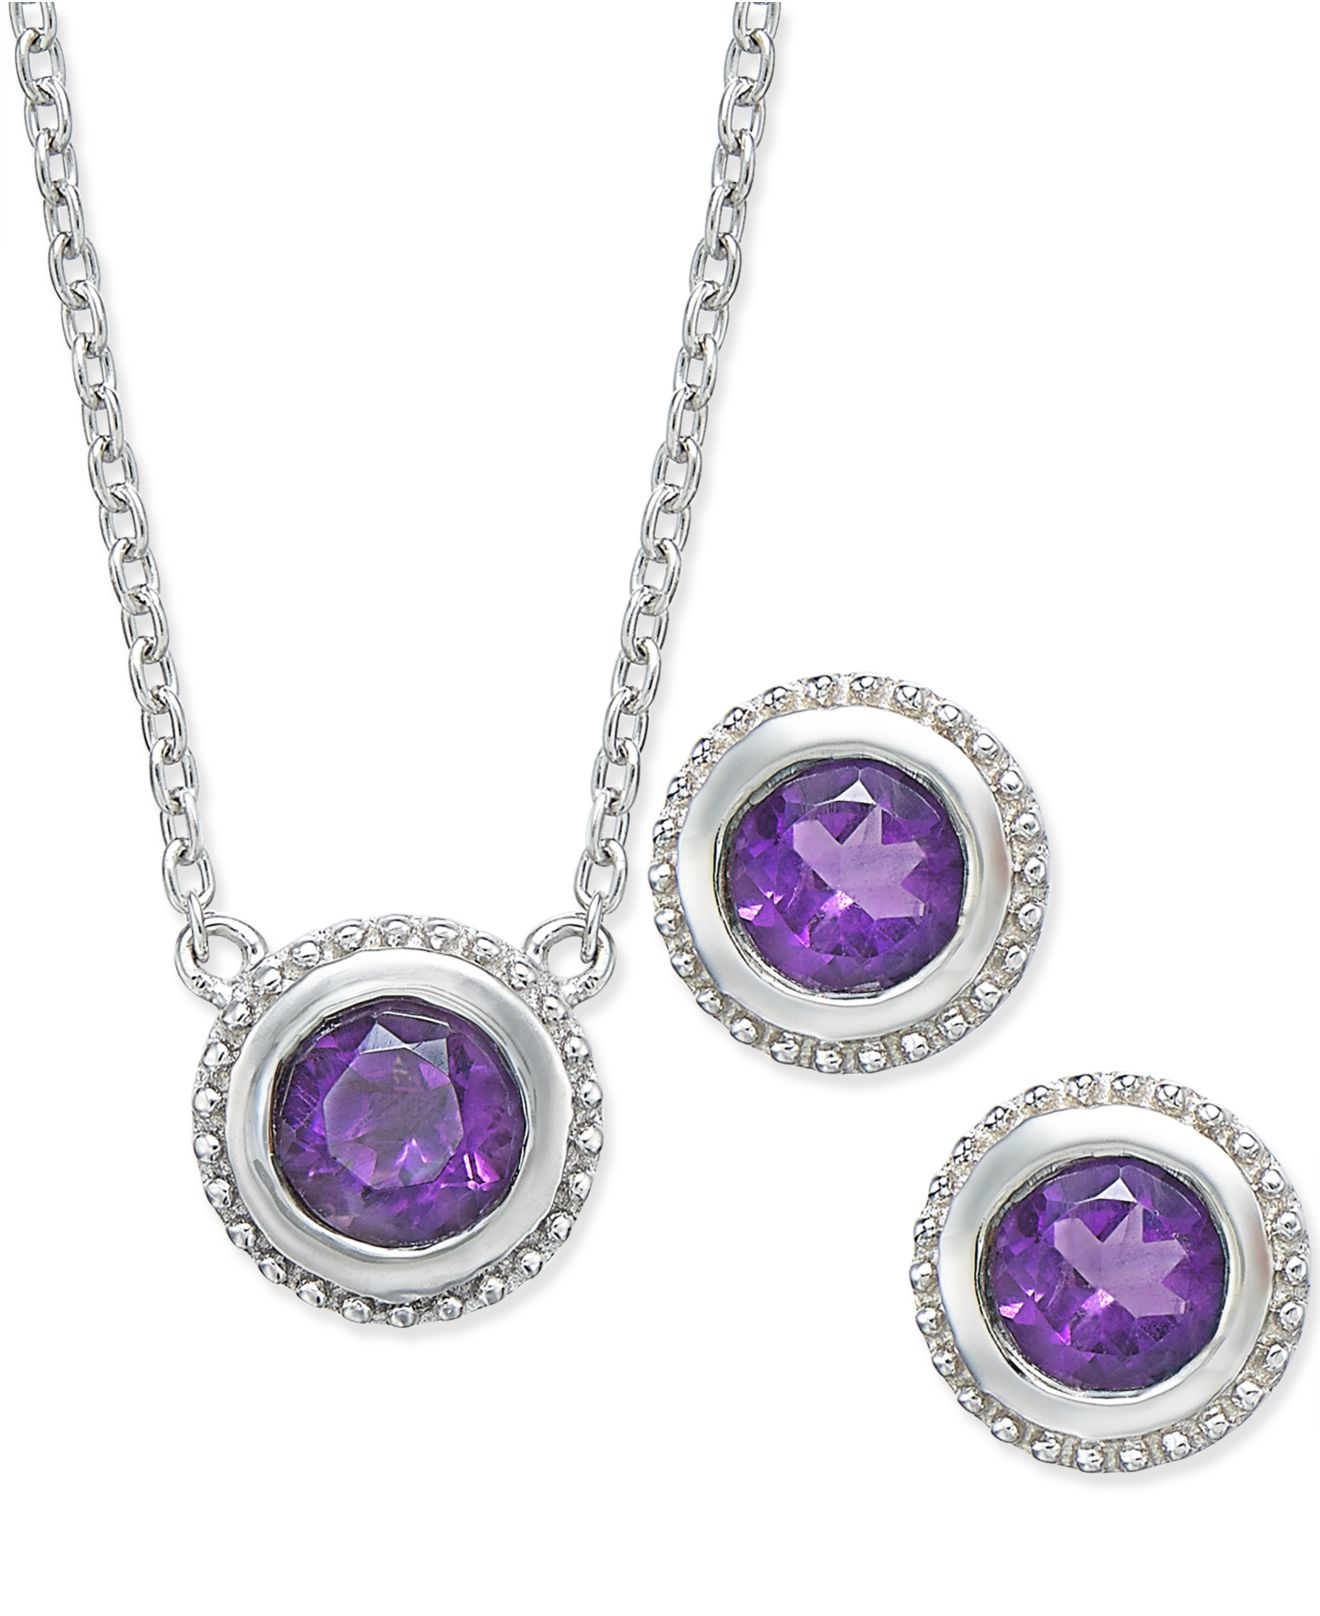 macy s amethyst earrings lyst macy s amethyst pendant necklace and earrings set 314